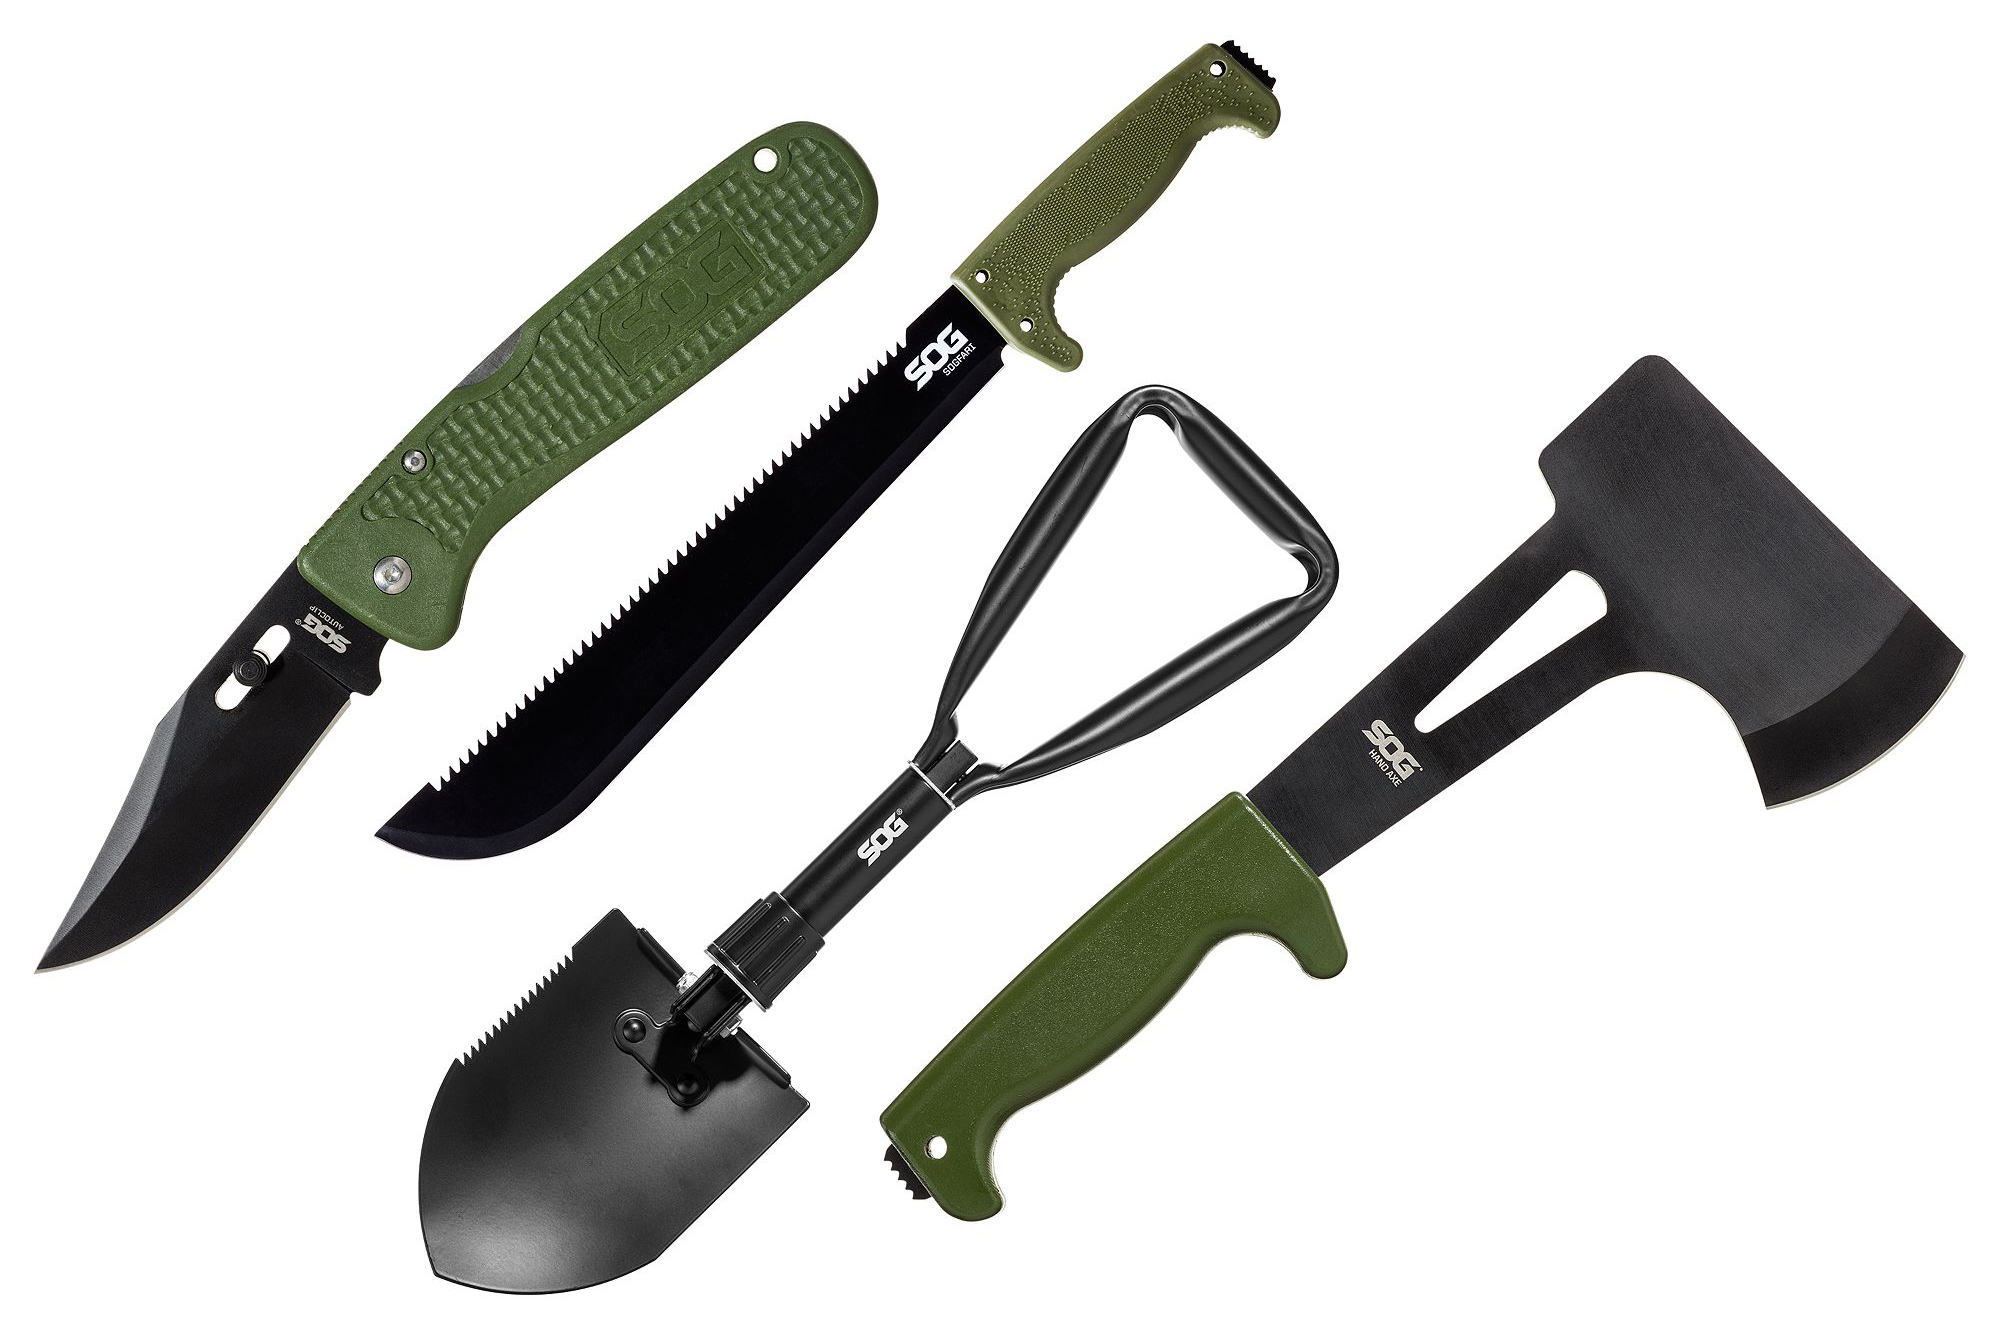 Dig, Cut, Chop: Half-Price Tool Kit Is Just $50 | GearJunkie